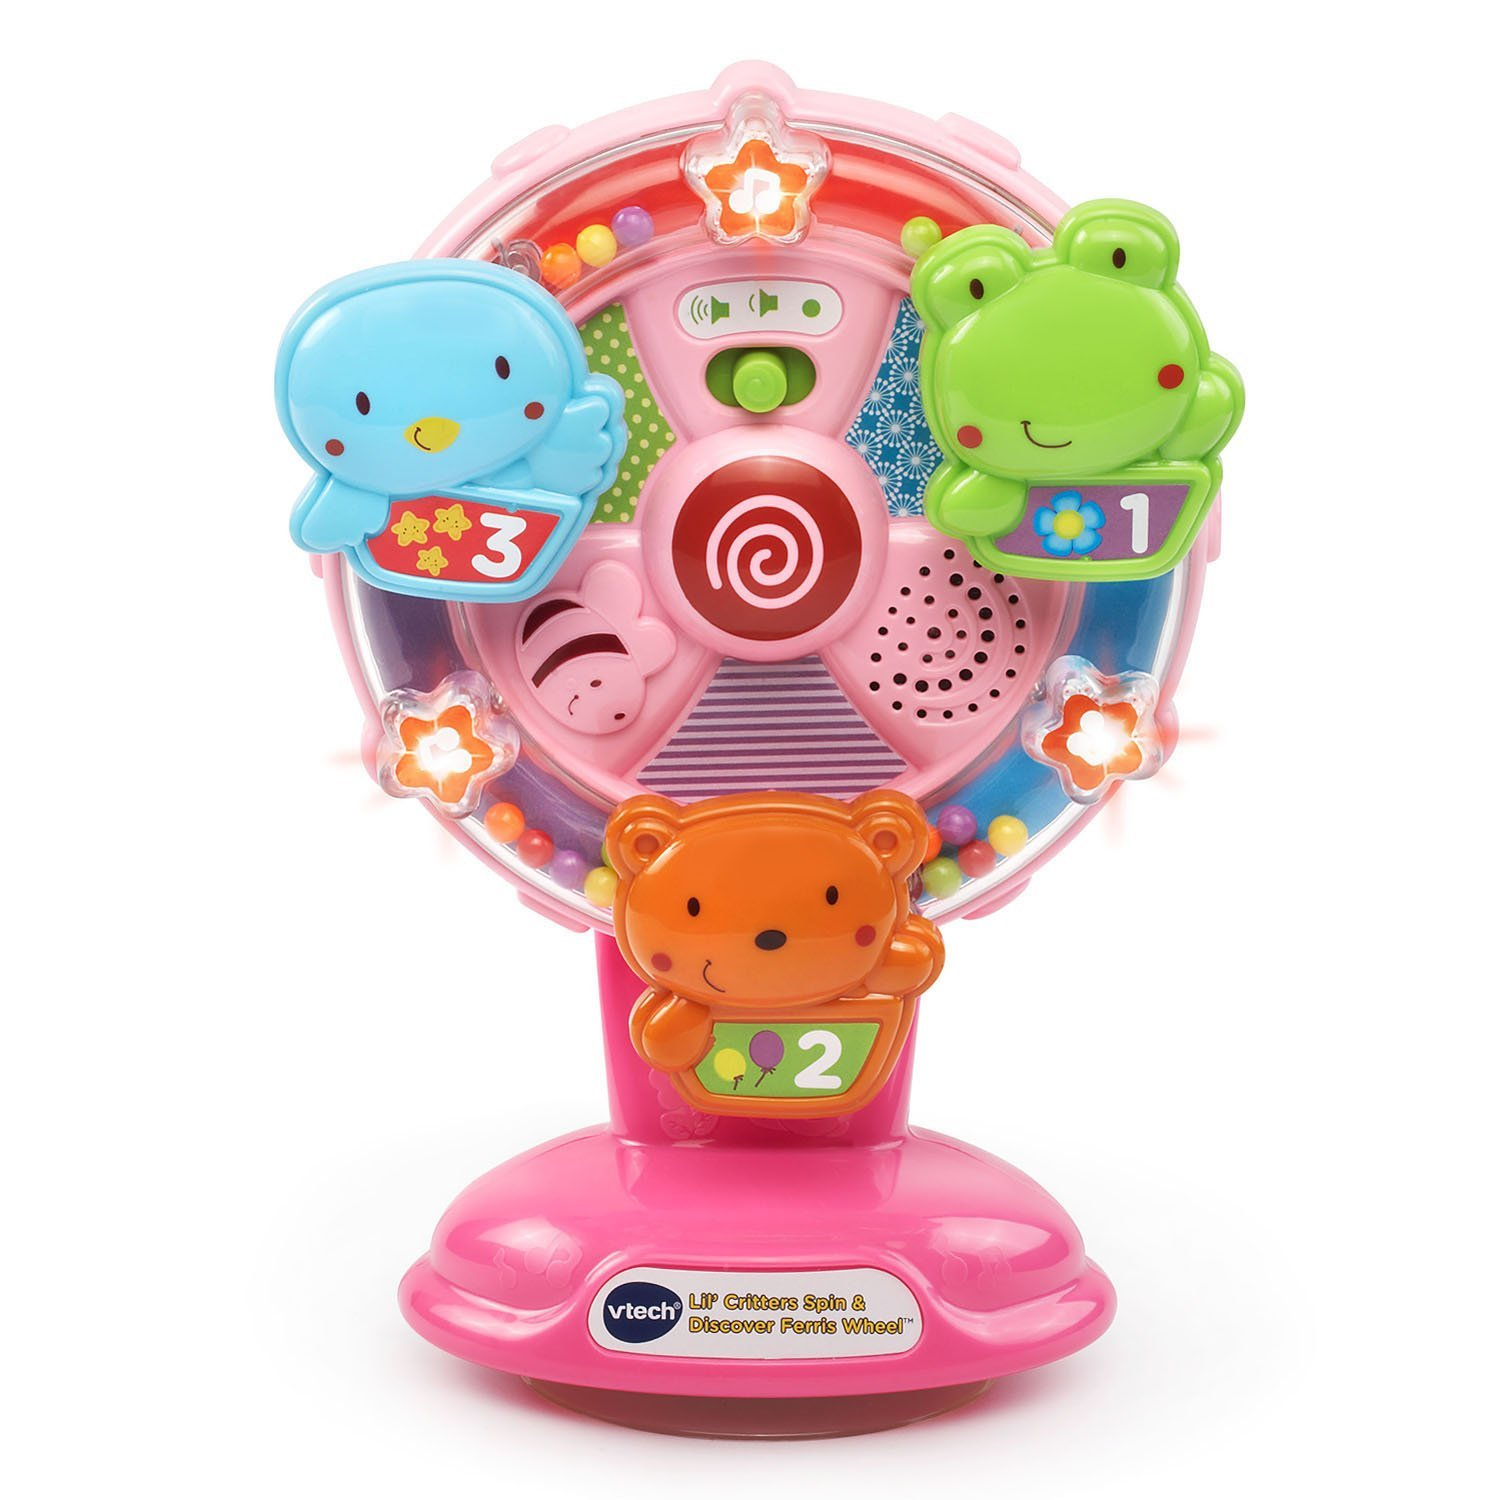 Ba Lil' Critters Spin and Discover Ferris Wheel Pink Online Exclusive, Baby high chair toy... by VTech